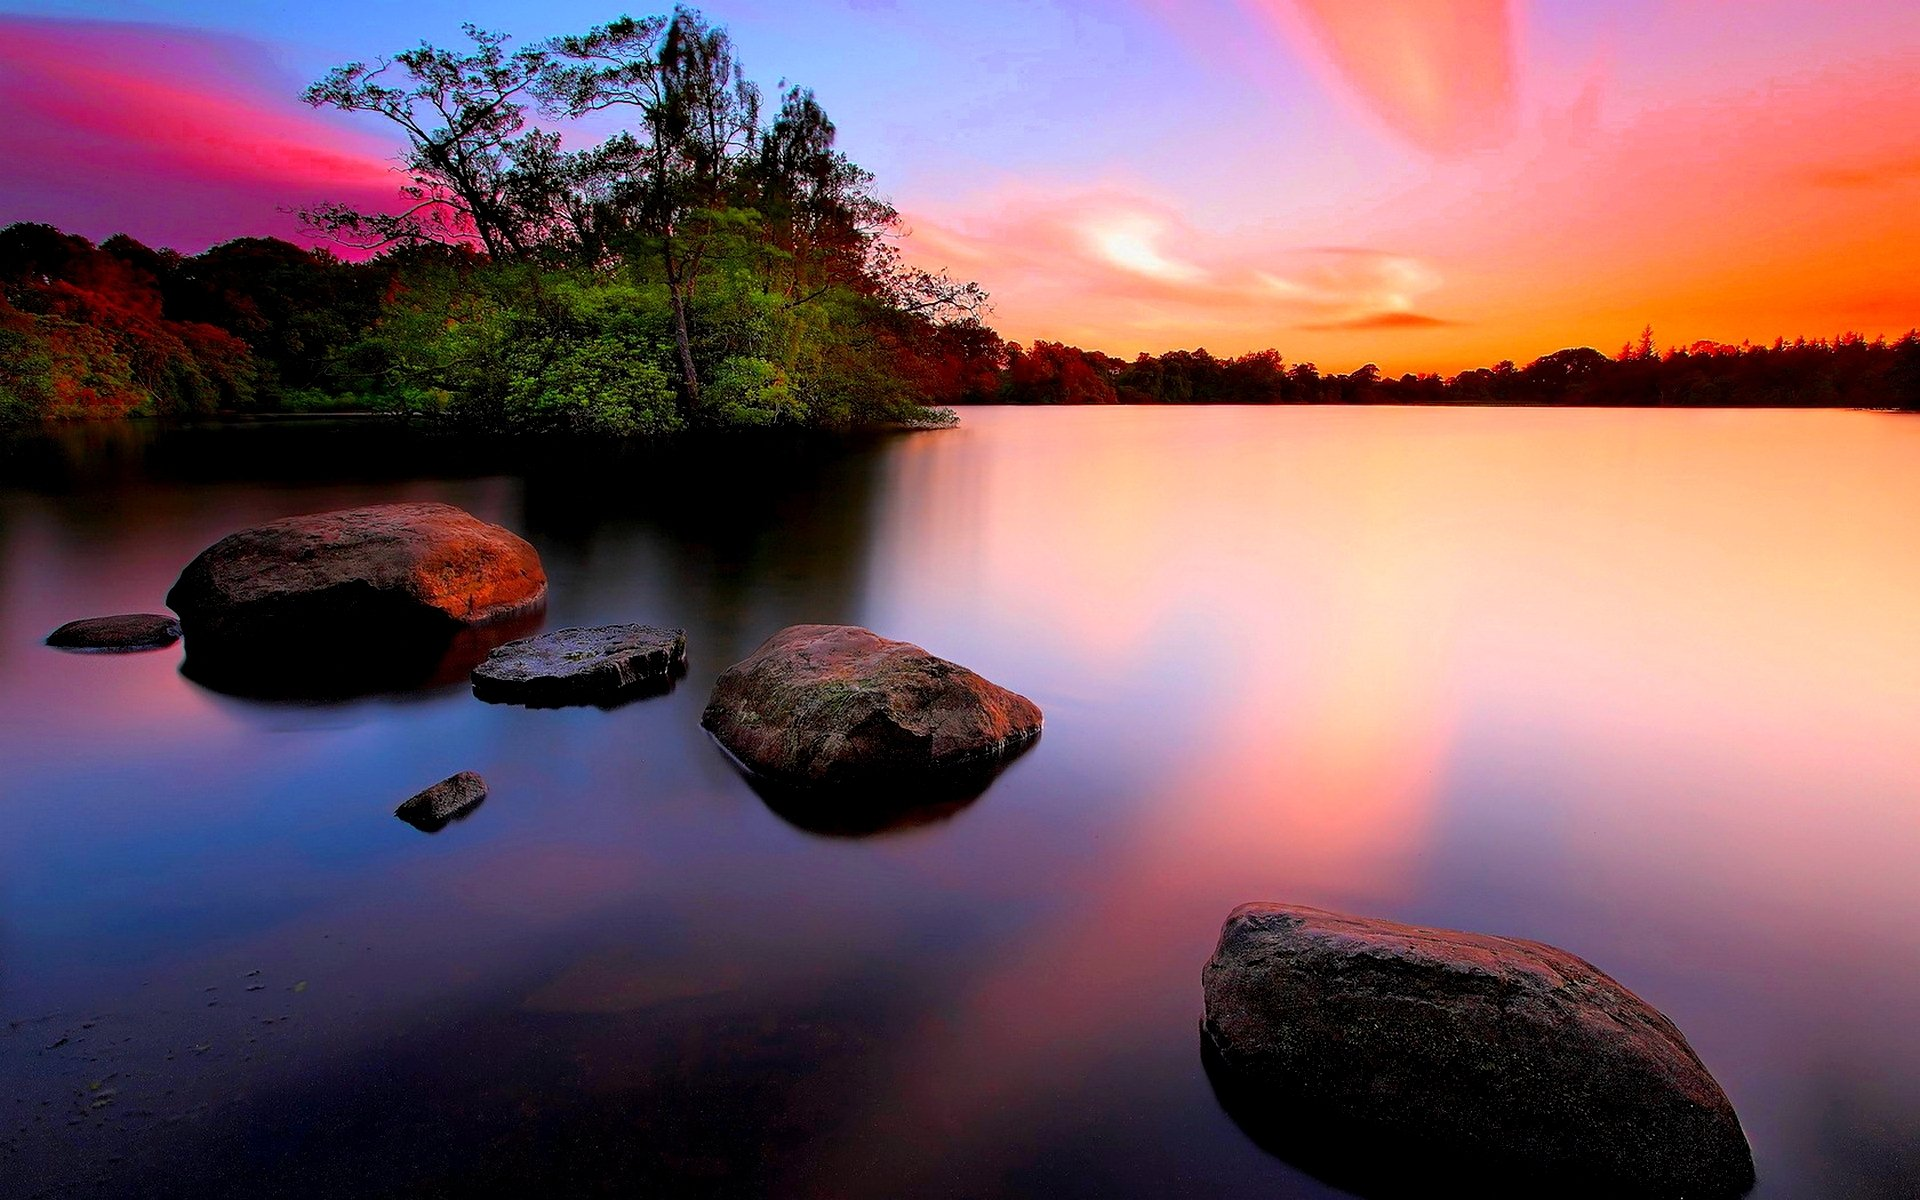 Earth - Scenic  Sunset Tree Rock Water Colorful Sky Wallpaper